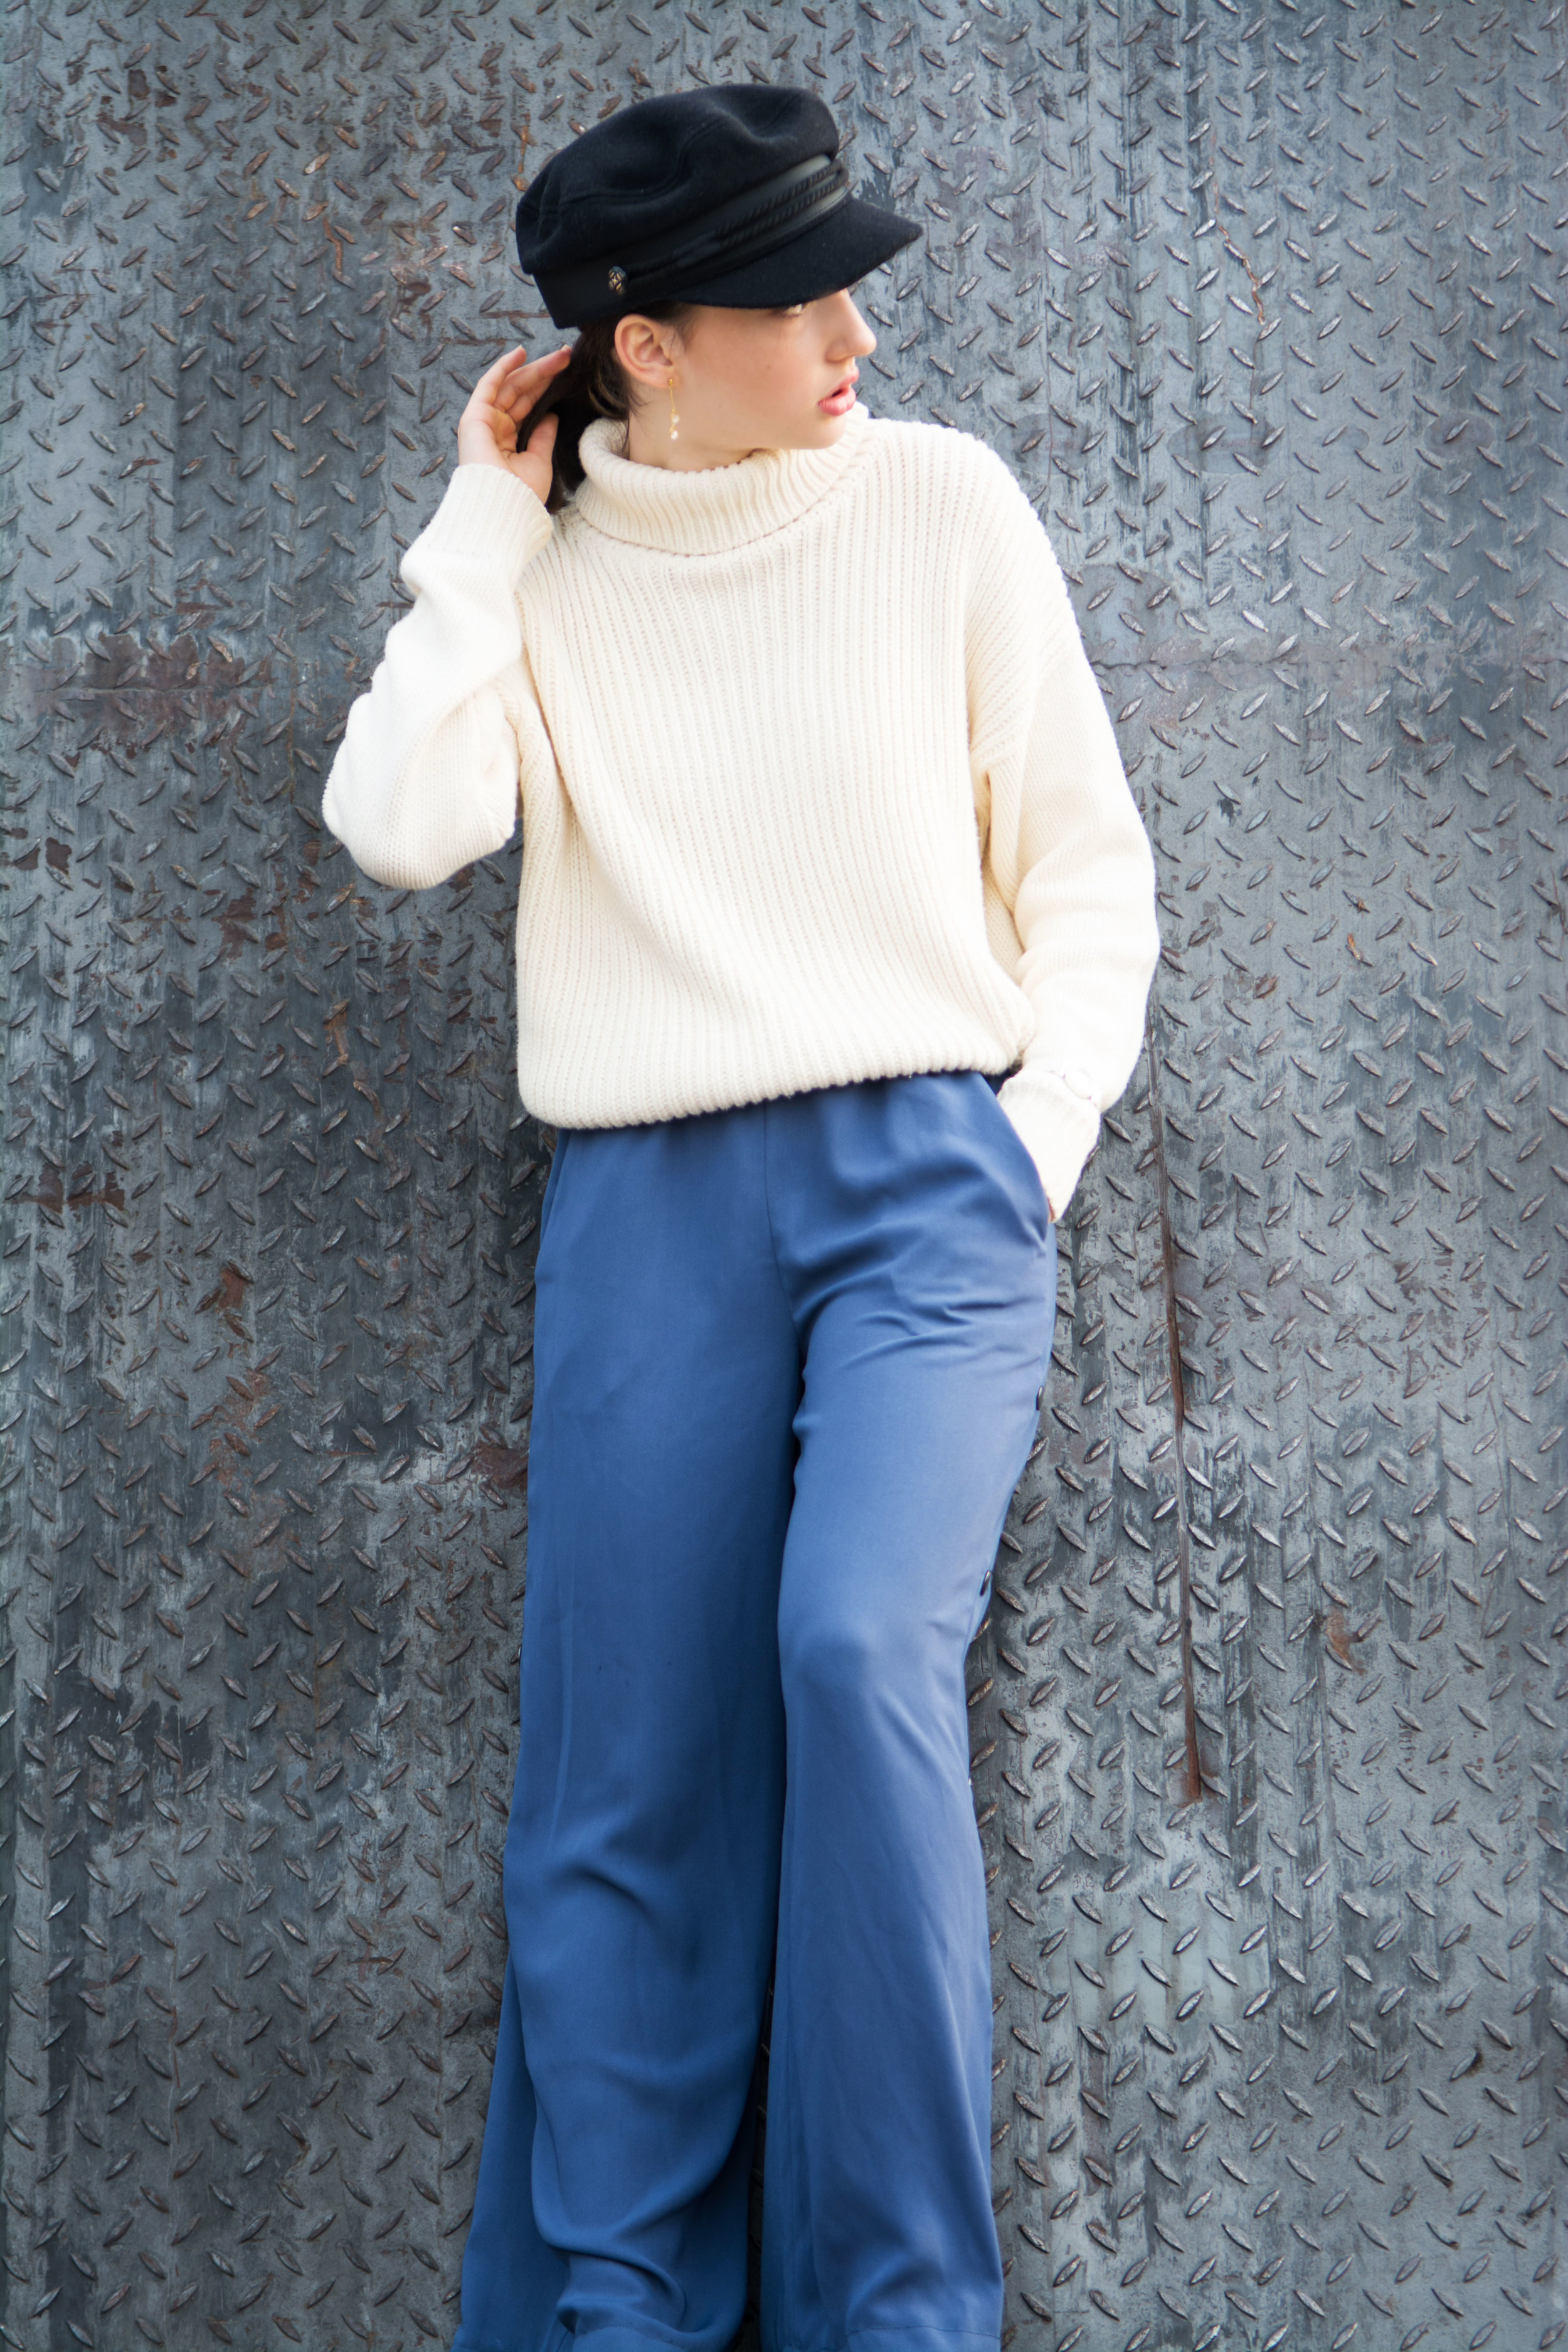 Hat - Asos  (click HERE)   Sweater - lulus  Pants - Asos  (click HERE)   Shoes- Aldo